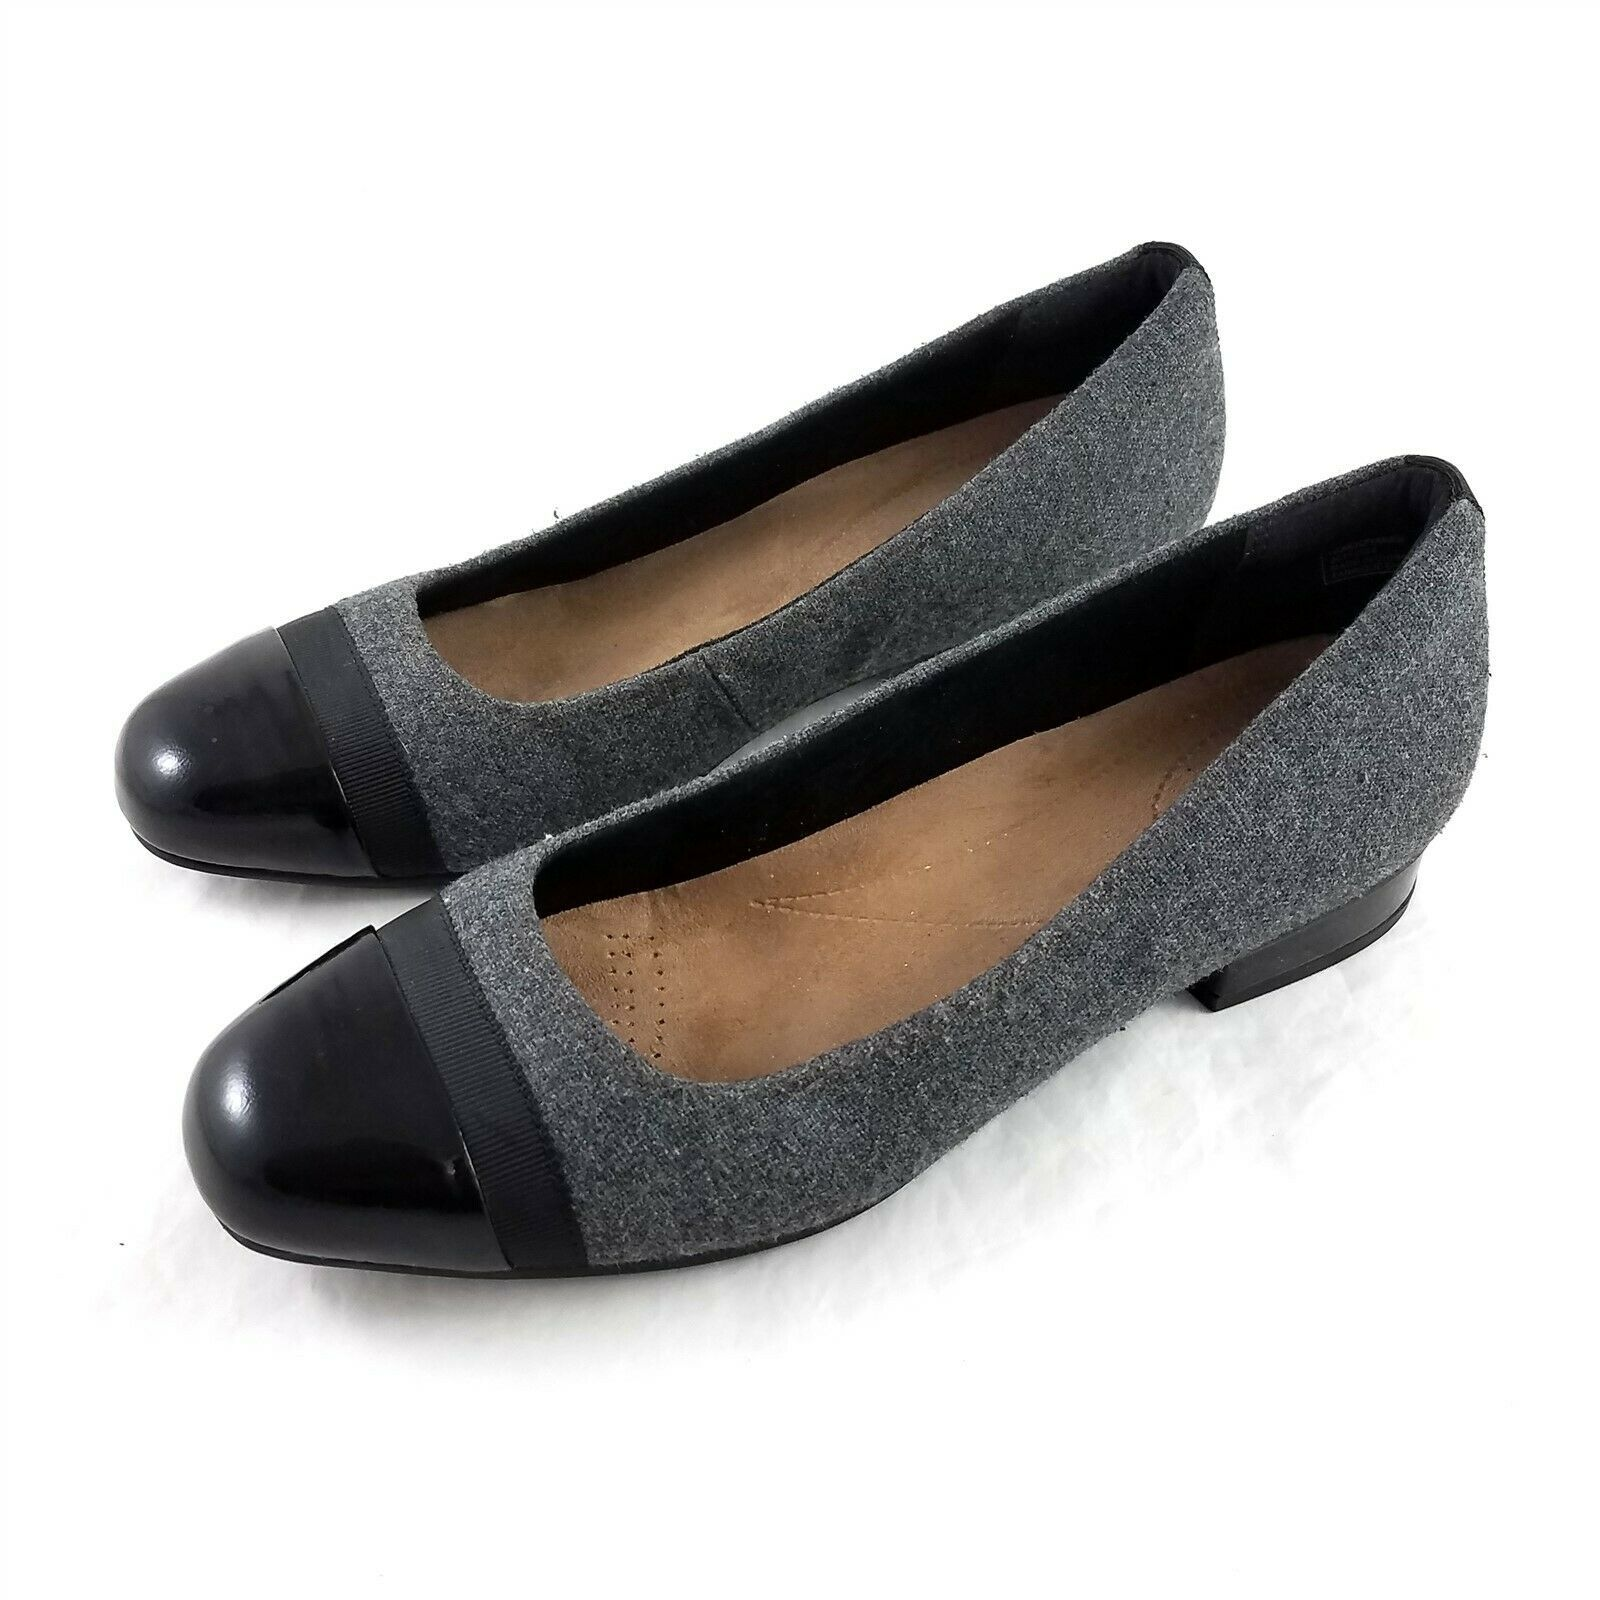 Primary image for Clarks Artisan Gray Wool Black Cap Toe Ballet Flats Shoes Womens 8.5 M